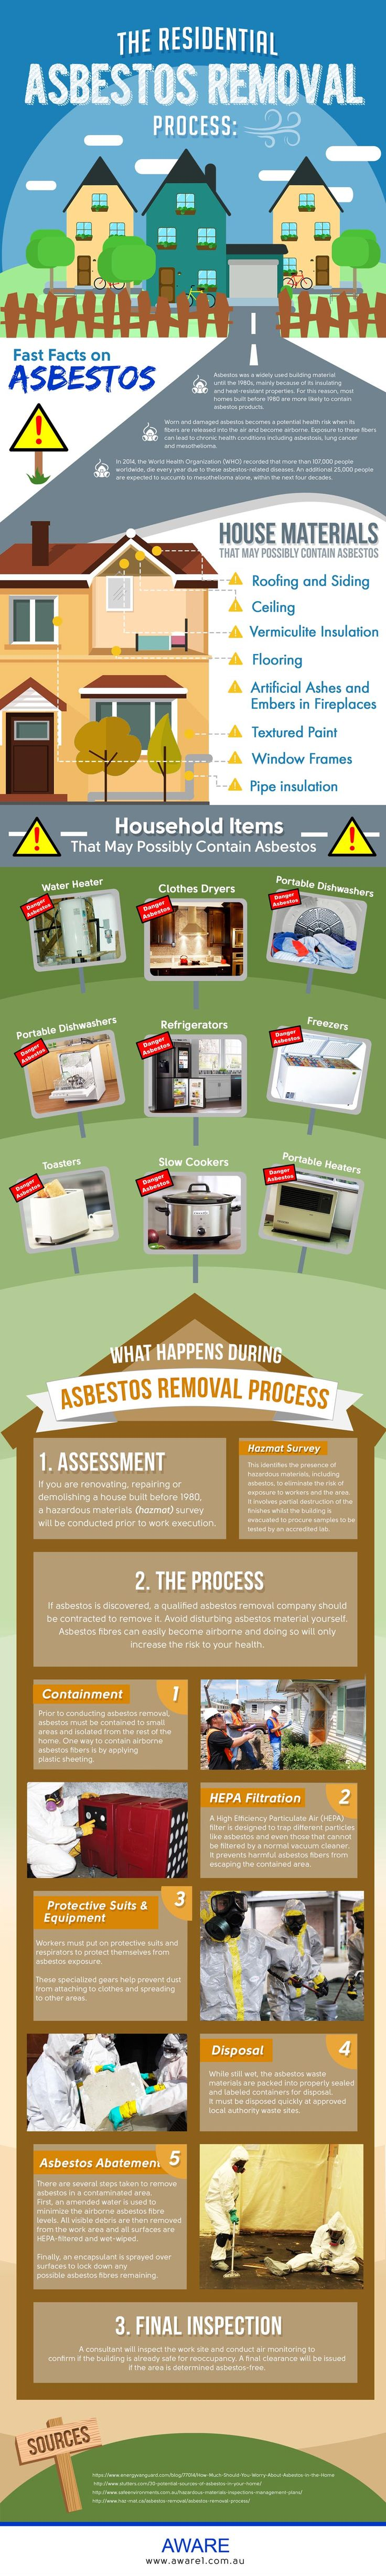 The Residential Asbestos Removal Process